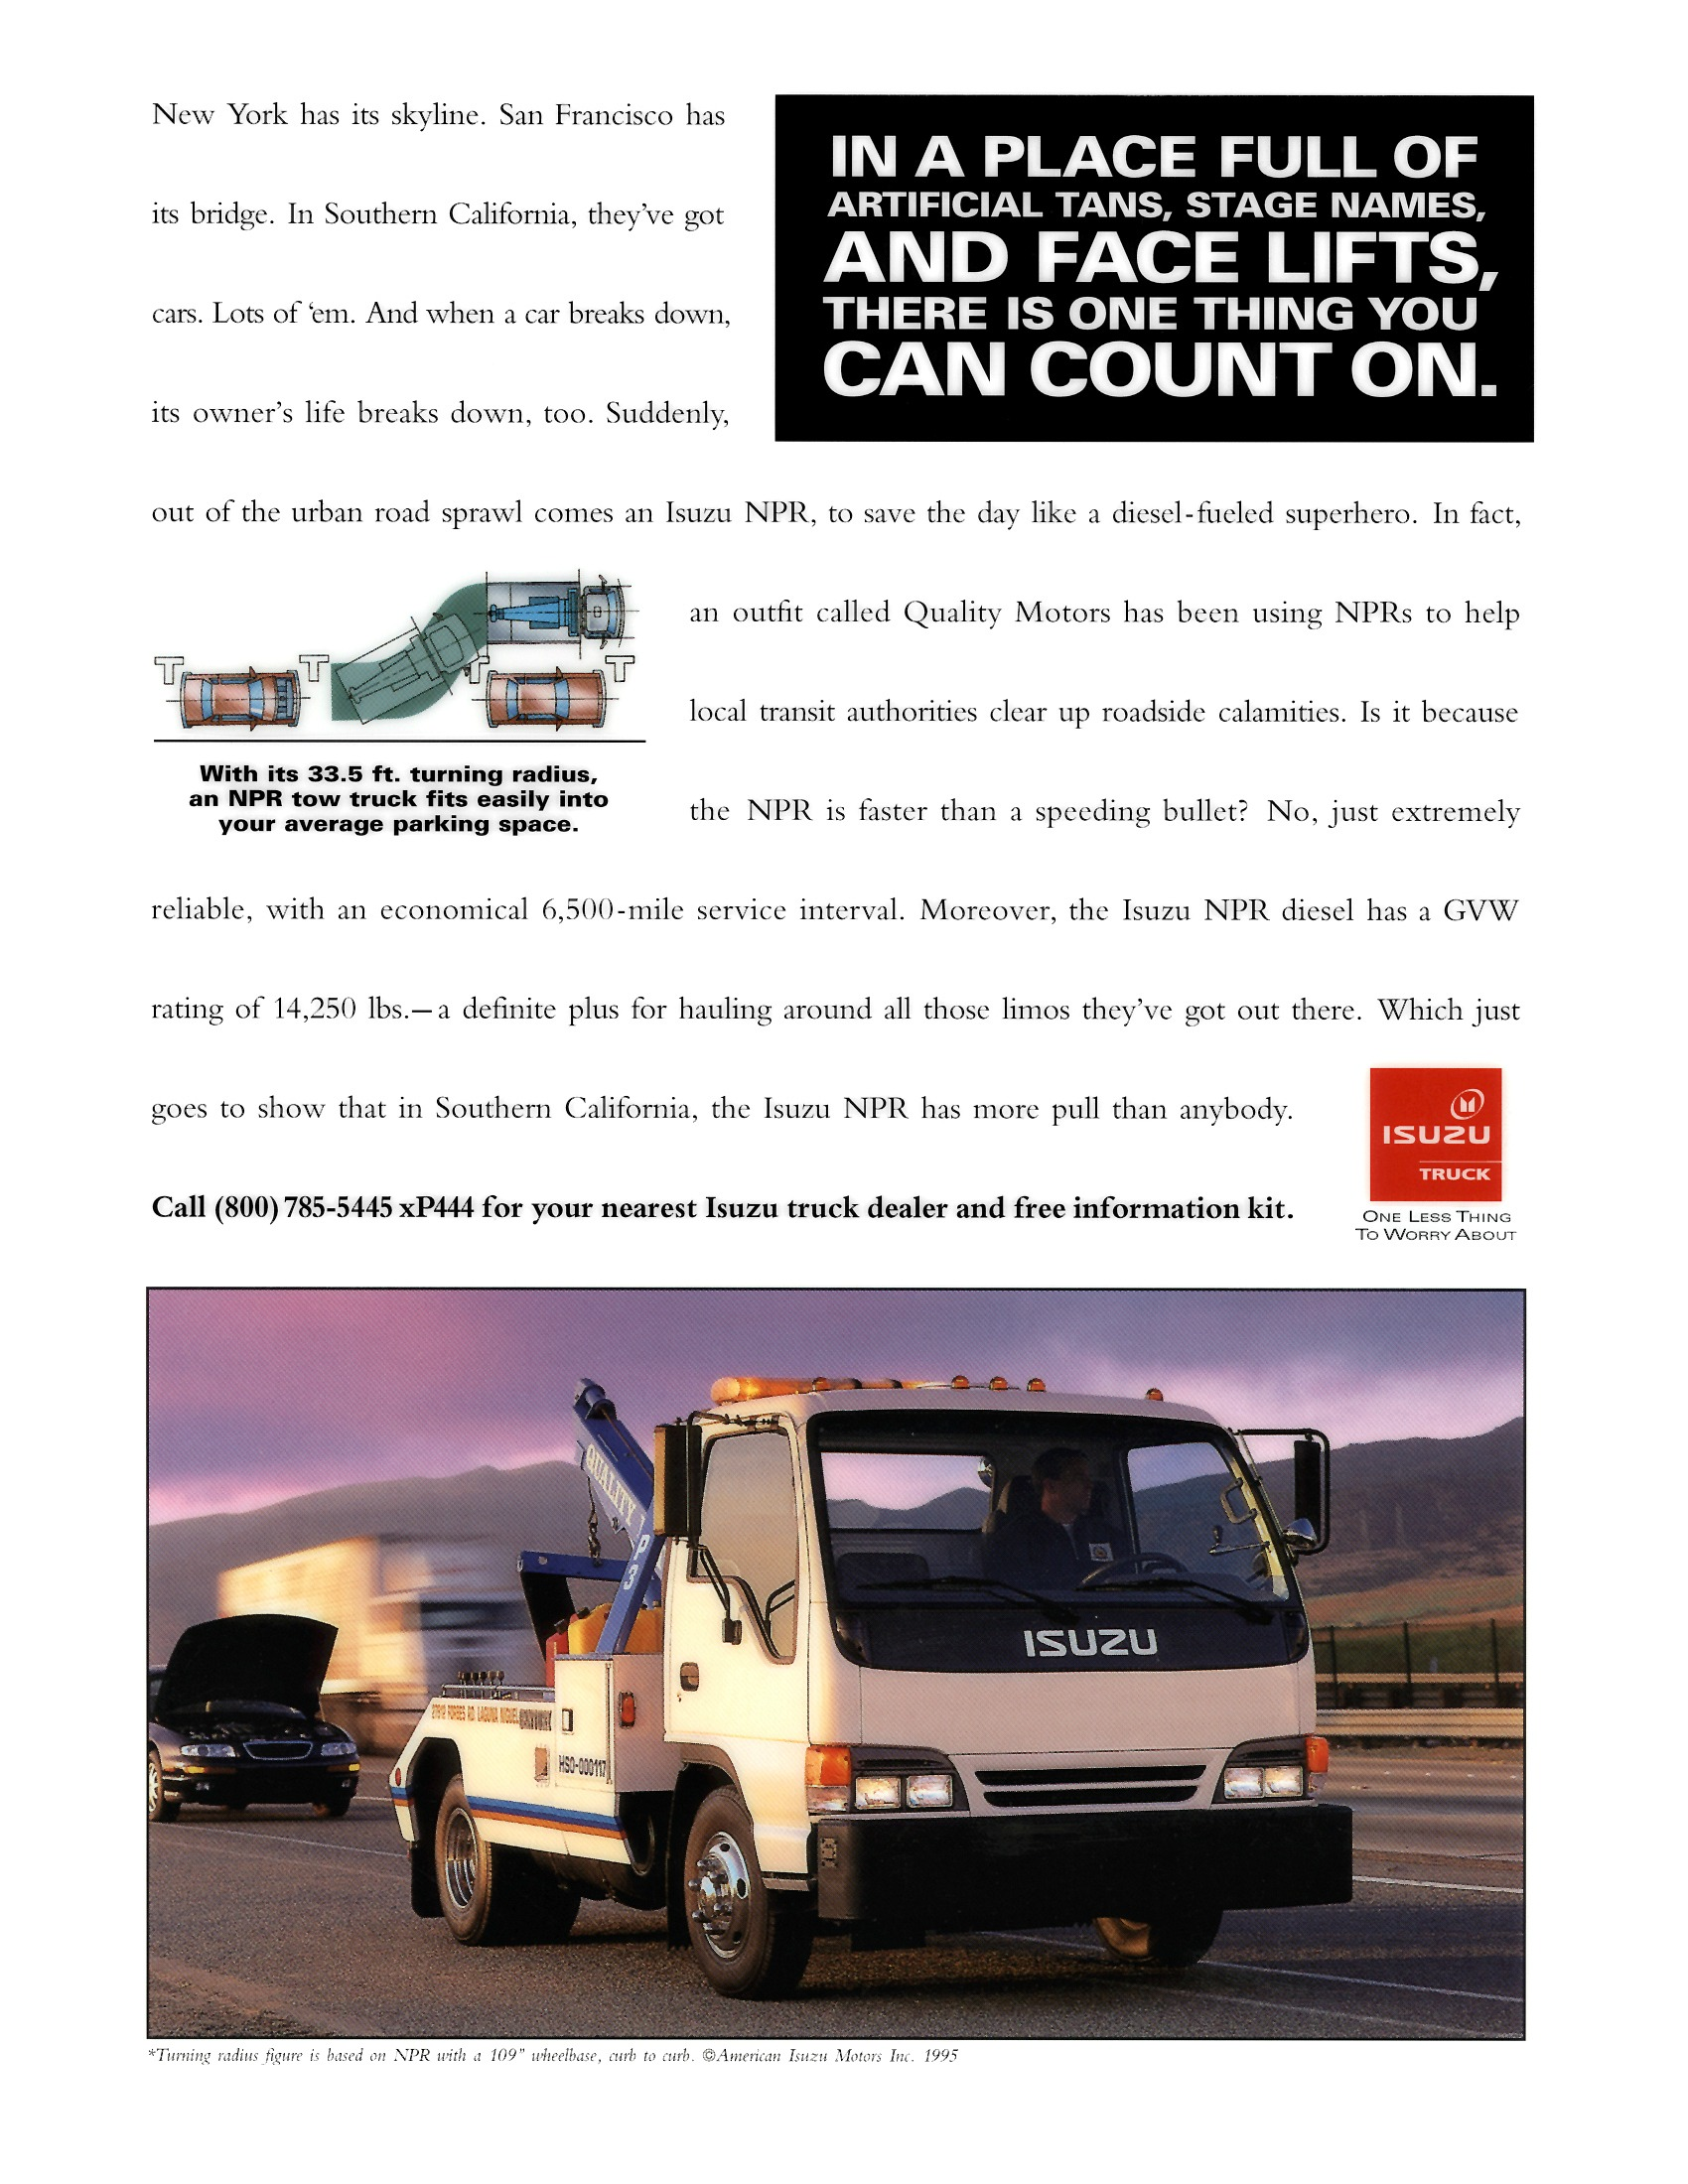 truck leasing strategy case problem 3 Challenges in mergers and acquisitions - tata motors case study - • tata motors in 2004 • m&a strategy of tata motors (telco dealers leasing & finance co.